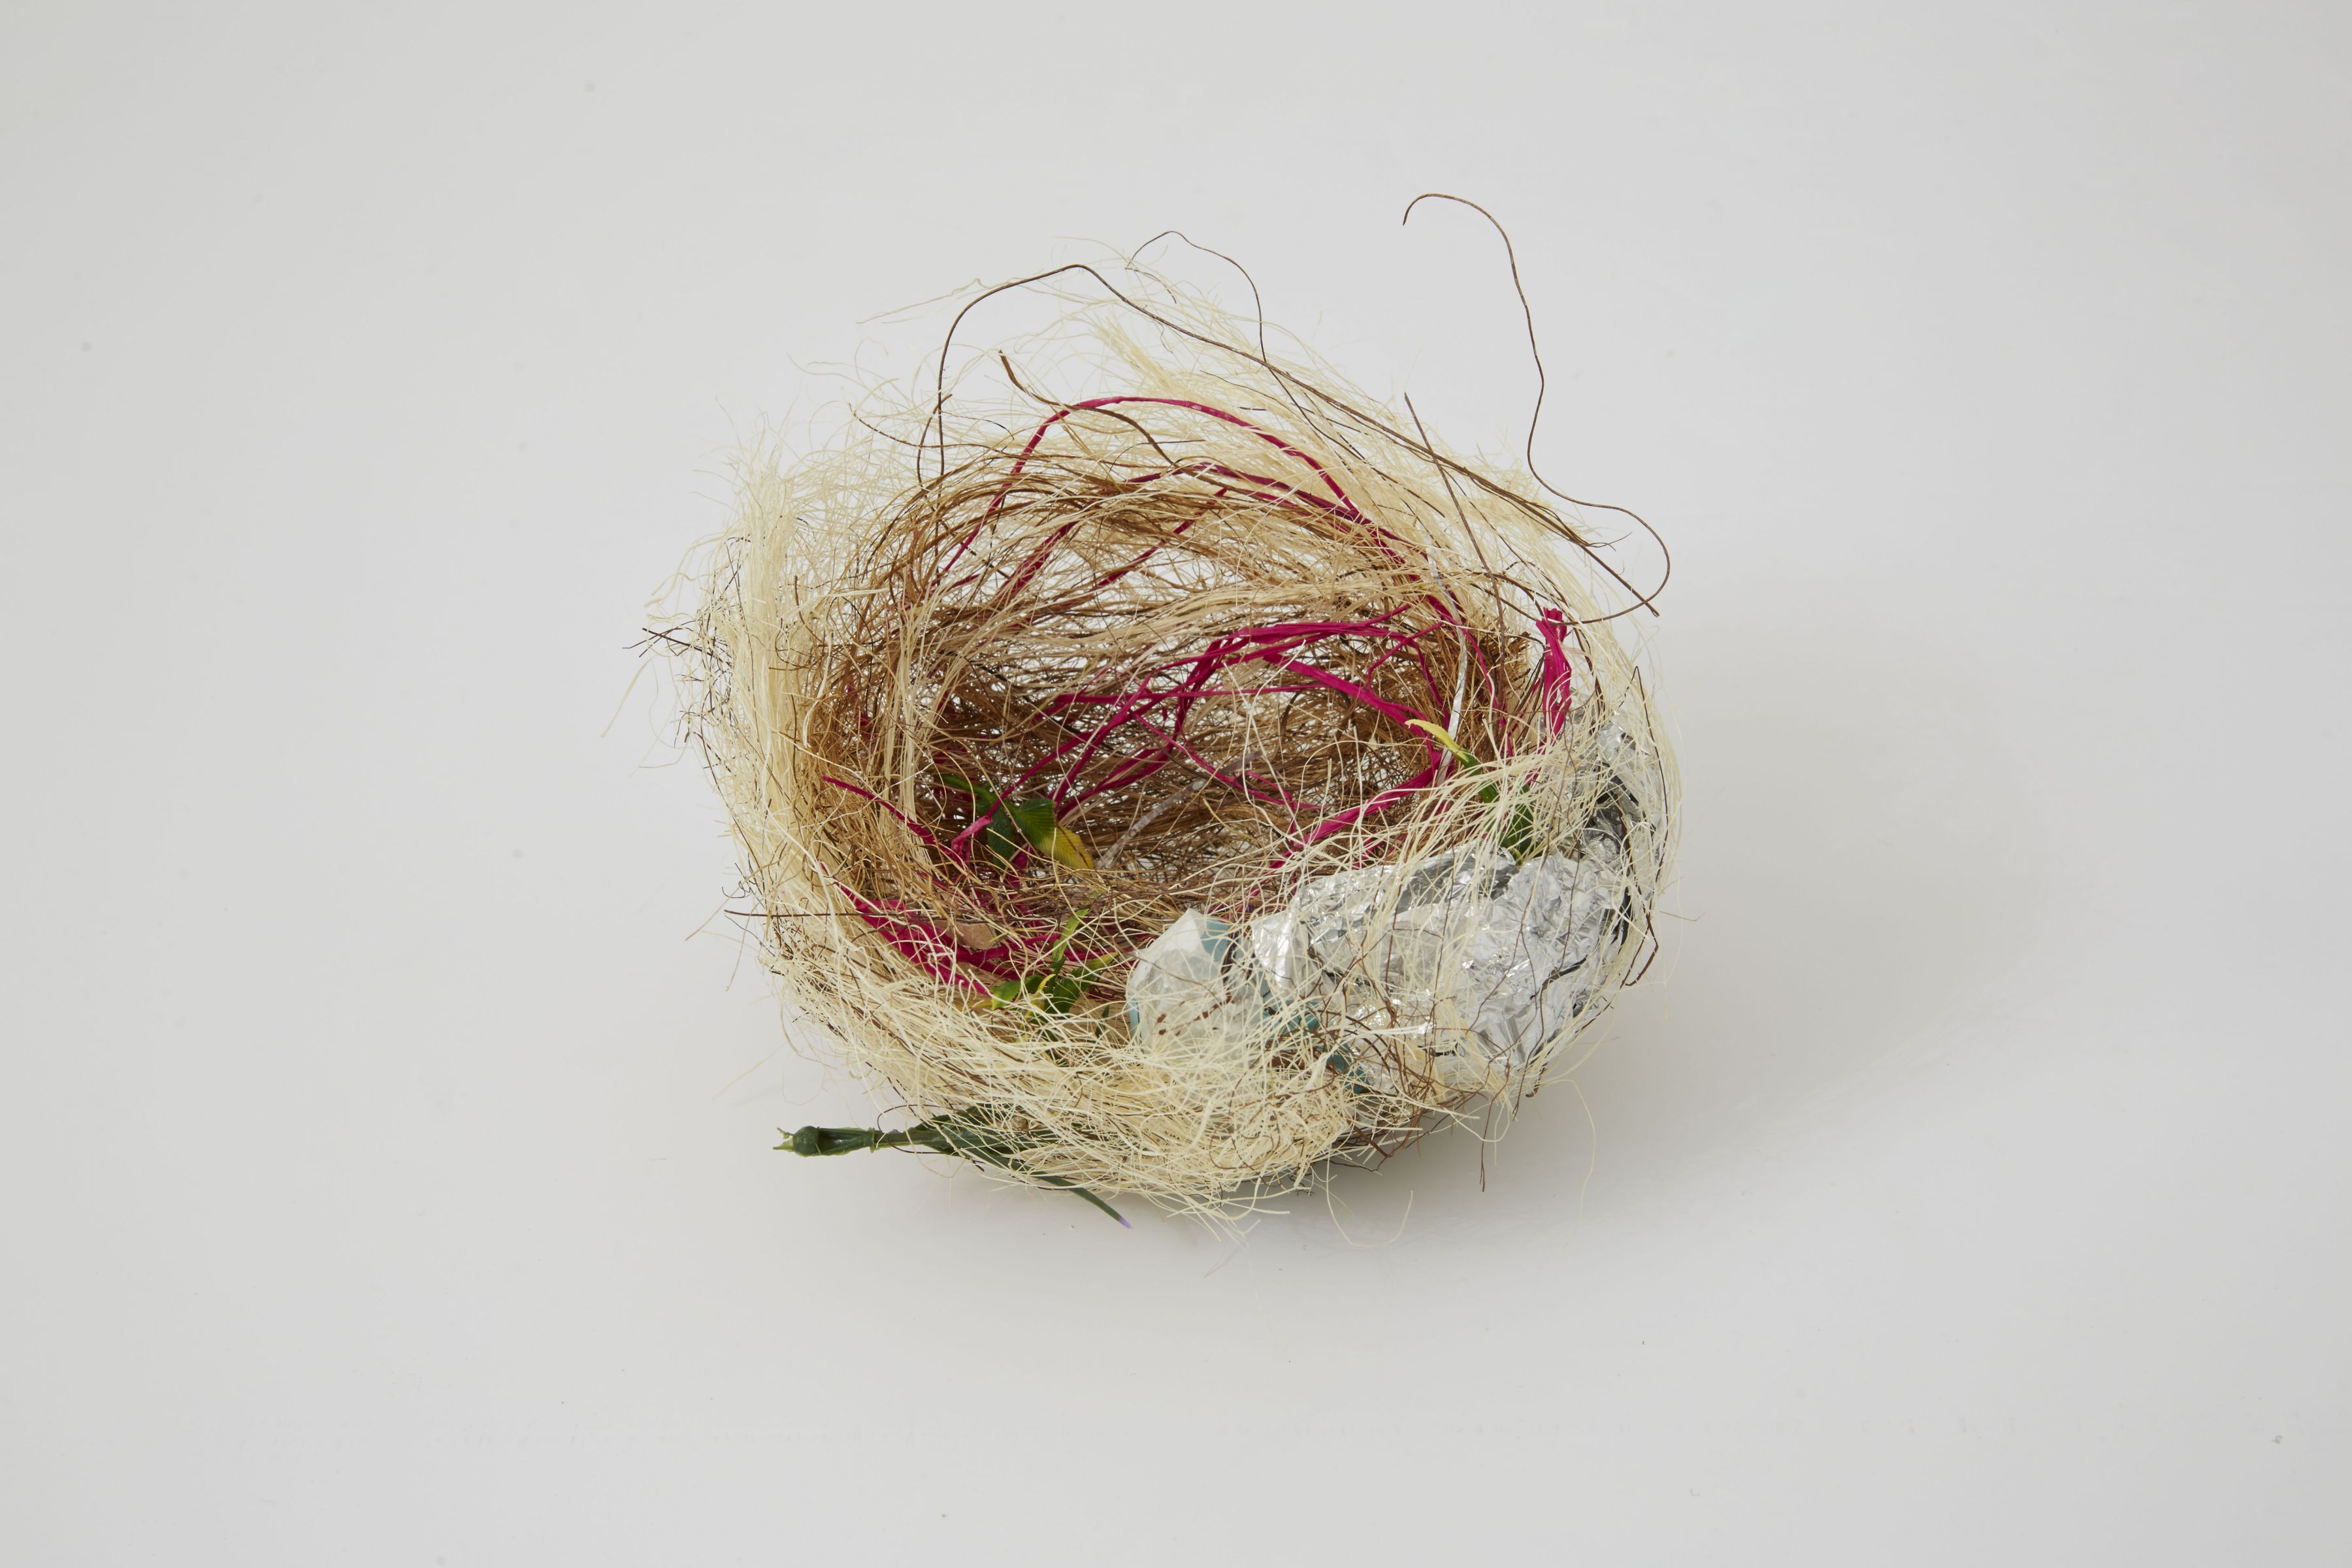 a sculpture of a bird's nest for sale at a Chelsea gallery